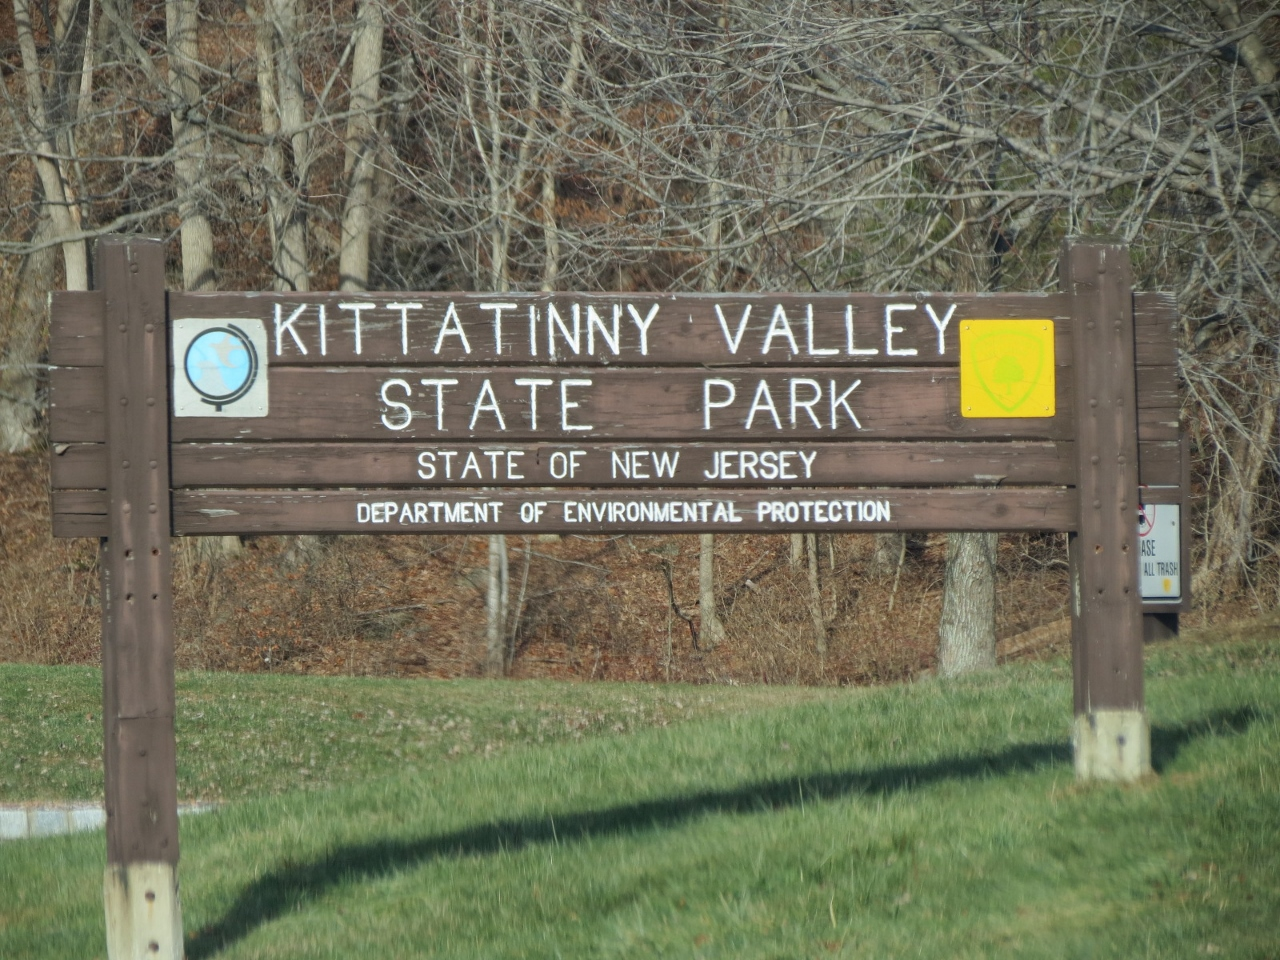 NEW LOCATION! Kittatinny Valley State Park  199 Goodale Rd, Newton, NJ 07860